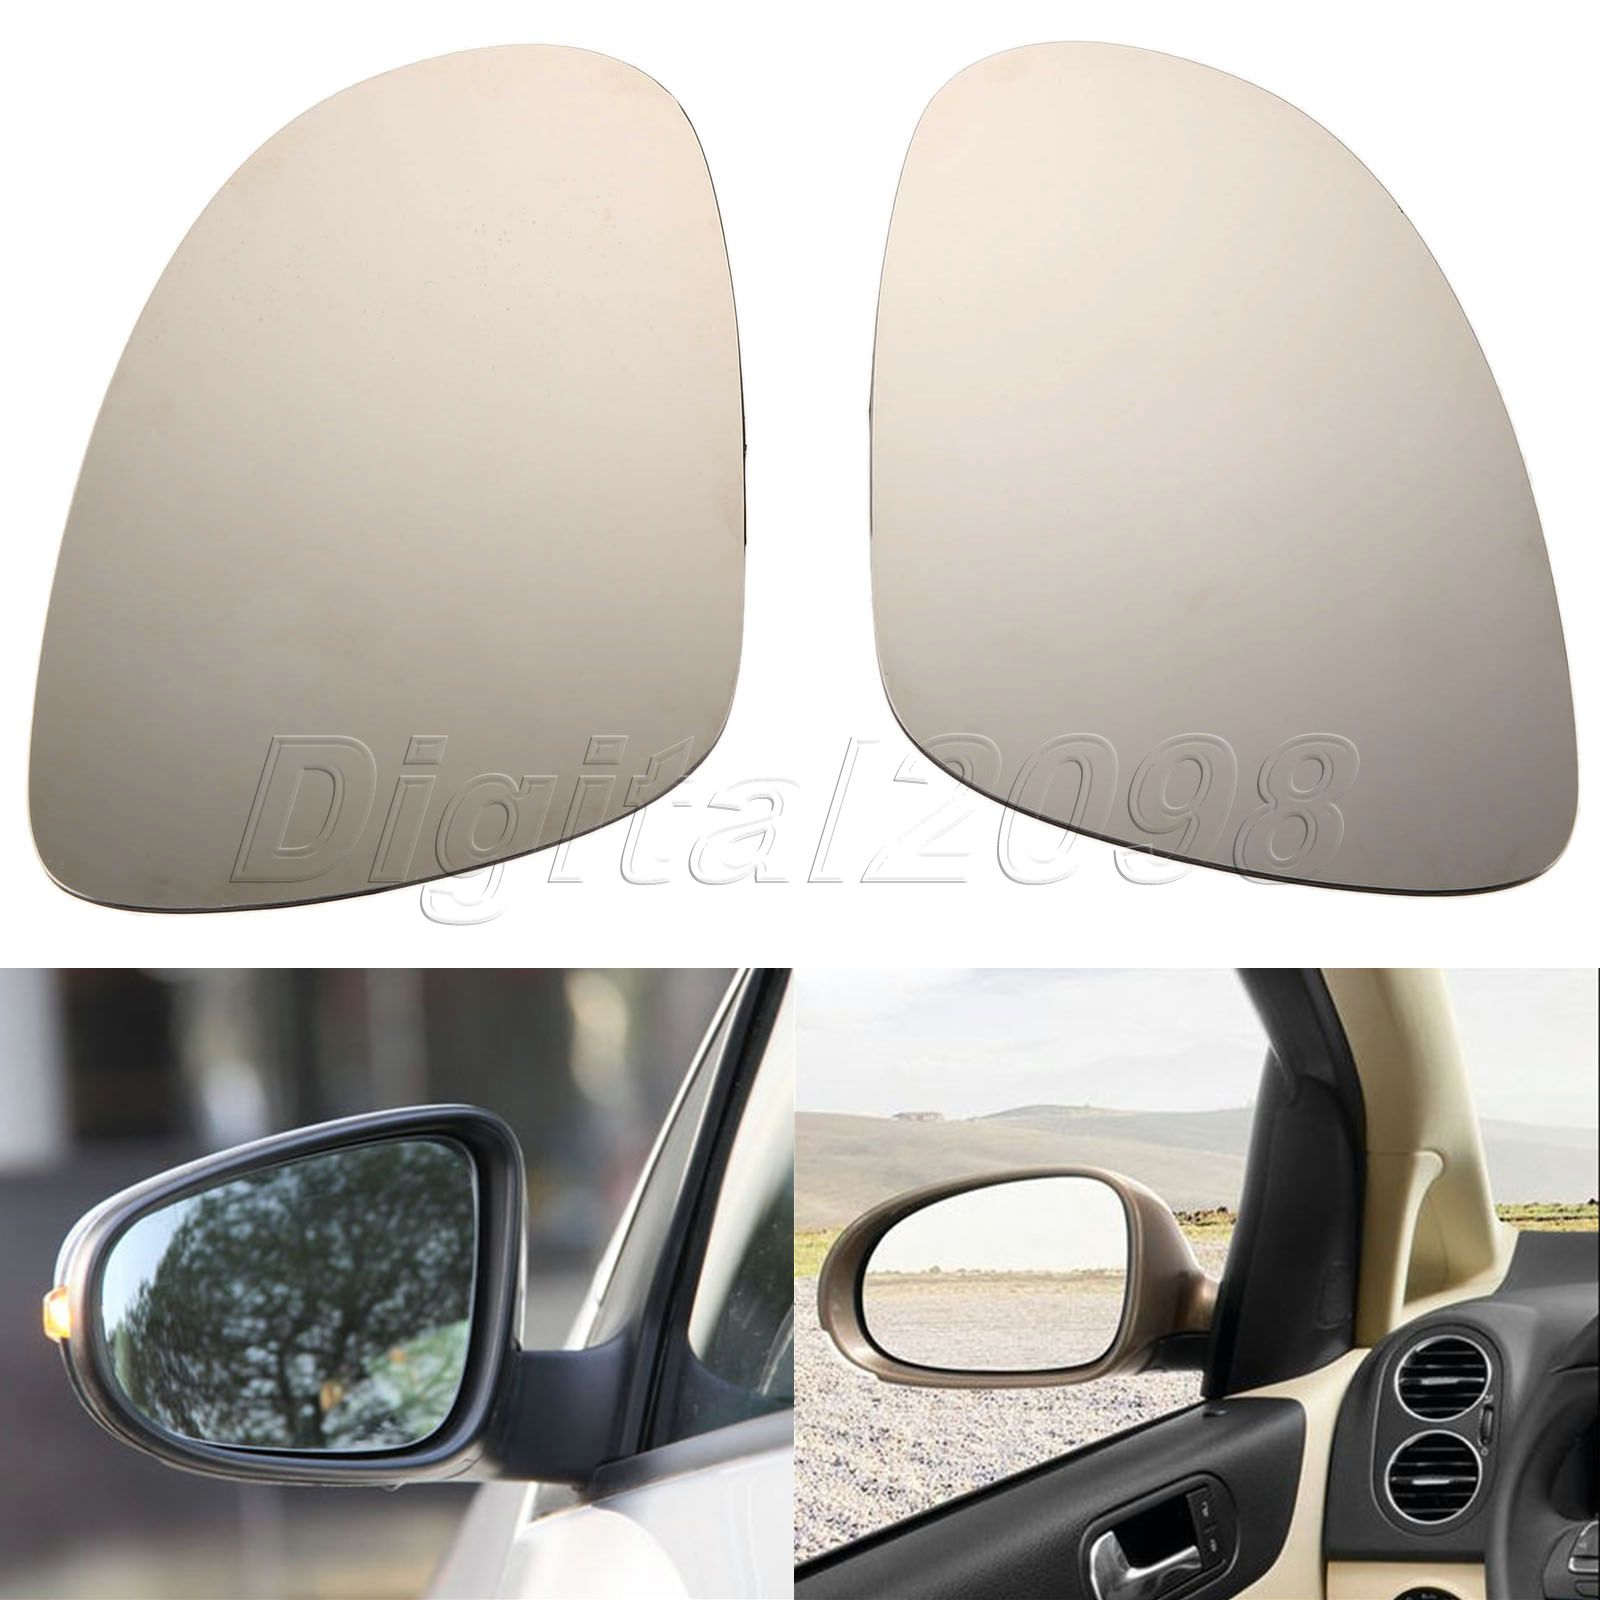 2Pcs Heated Door Wing Mirrors Glass Left Right Side For VW GOLF JETTA MK5 PASSAT B6 EOS R32 Rabbit Car Rearview Heating Mirror